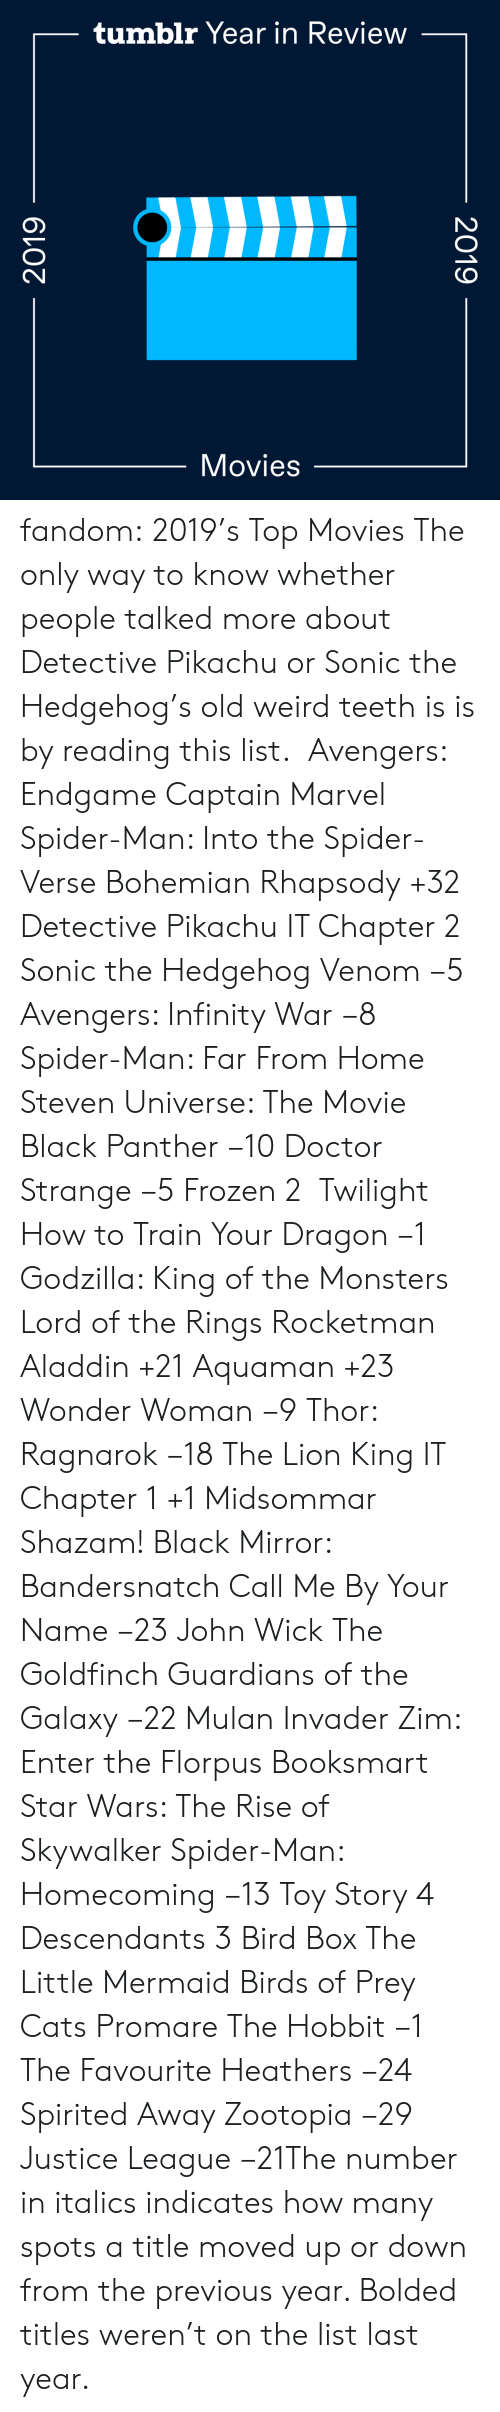 Lion: tumblr Year in Review  Movies  2019  2019 fandom:  2019's Top Movies  The only way to know whether people talked more about Detective Pikachu or Sonic the Hedgehog's old weird teeth is is by reading this list.   Avengers: Endgame  Captain Marvel  Spider-Man: Into the Spider-Verse  Bohemian Rhapsody +32  Detective Pikachu  IT Chapter 2  Sonic the Hedgehog  Venom −5  Avengers: Infinity War −8  Spider-Man: Far From Home  Steven Universe: The Movie  Black Panther −10  Doctor Strange −5  Frozen 2   Twilight  How to Train Your Dragon −1  Godzilla: King of the Monsters  Lord of the Rings  Rocketman  Aladdin +21  Aquaman +23  Wonder Woman −9  Thor: Ragnarok −18  The Lion King  IT Chapter 1 +1  Midsommar  Shazam!  Black Mirror: Bandersnatch  Call Me By Your Name −23  John Wick  The Goldfinch  Guardians of the Galaxy −22  Mulan  Invader Zim: Enter the Florpus  Booksmart  Star Wars: The Rise of Skywalker  Spider-Man: Homecoming −13  Toy Story 4  Descendants 3  Bird Box  The Little Mermaid  Birds of Prey  Cats  Promare  The Hobbit −1  The Favourite  Heathers −24  Spirited Away  Zootopia −29 Justice League −21The number in italics indicates how many spots a title moved up or down from the previous year. Bolded titles weren't on the list last year.